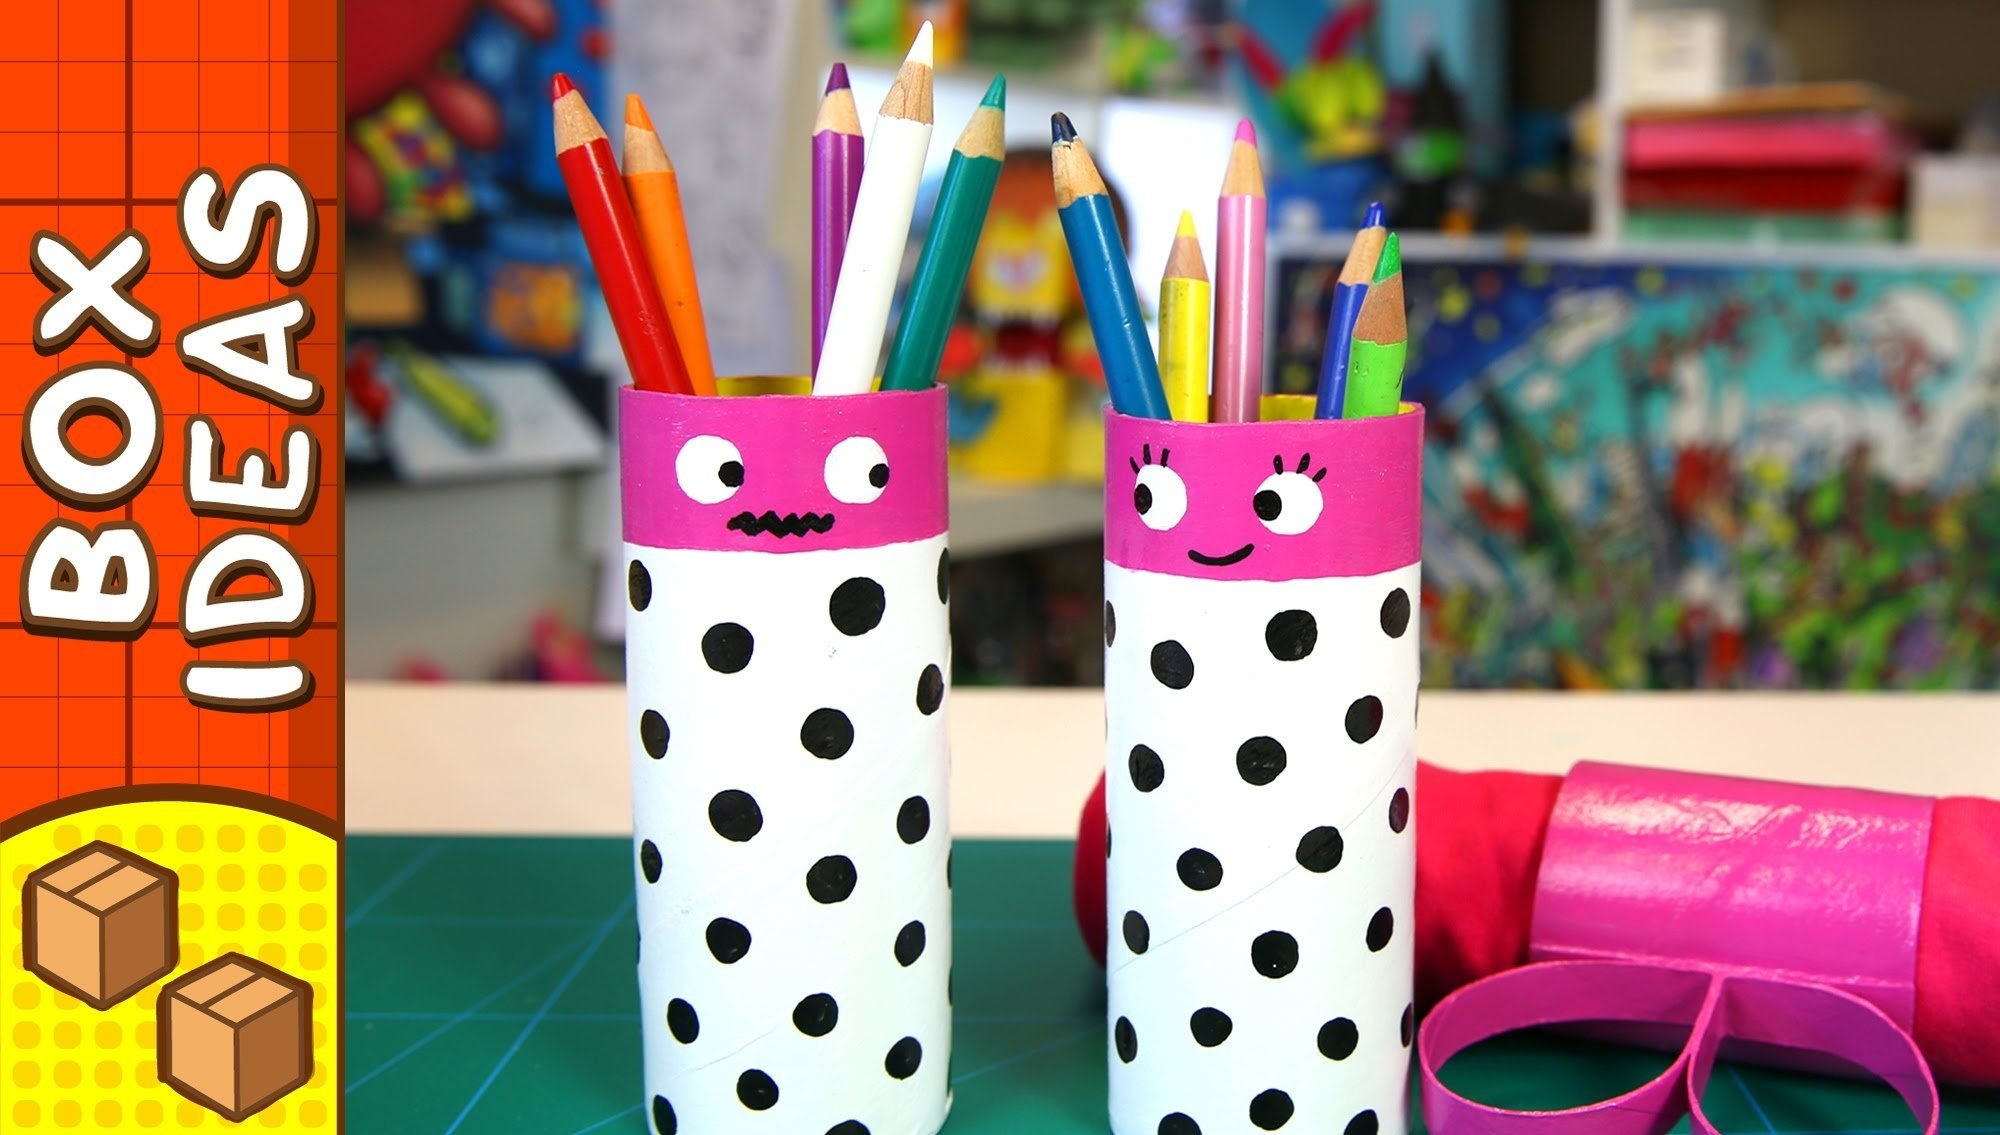 10 Famous Cool Craft Ideas For Kids diy gift box pencil couple craft ideas for kids on box yourself 2021